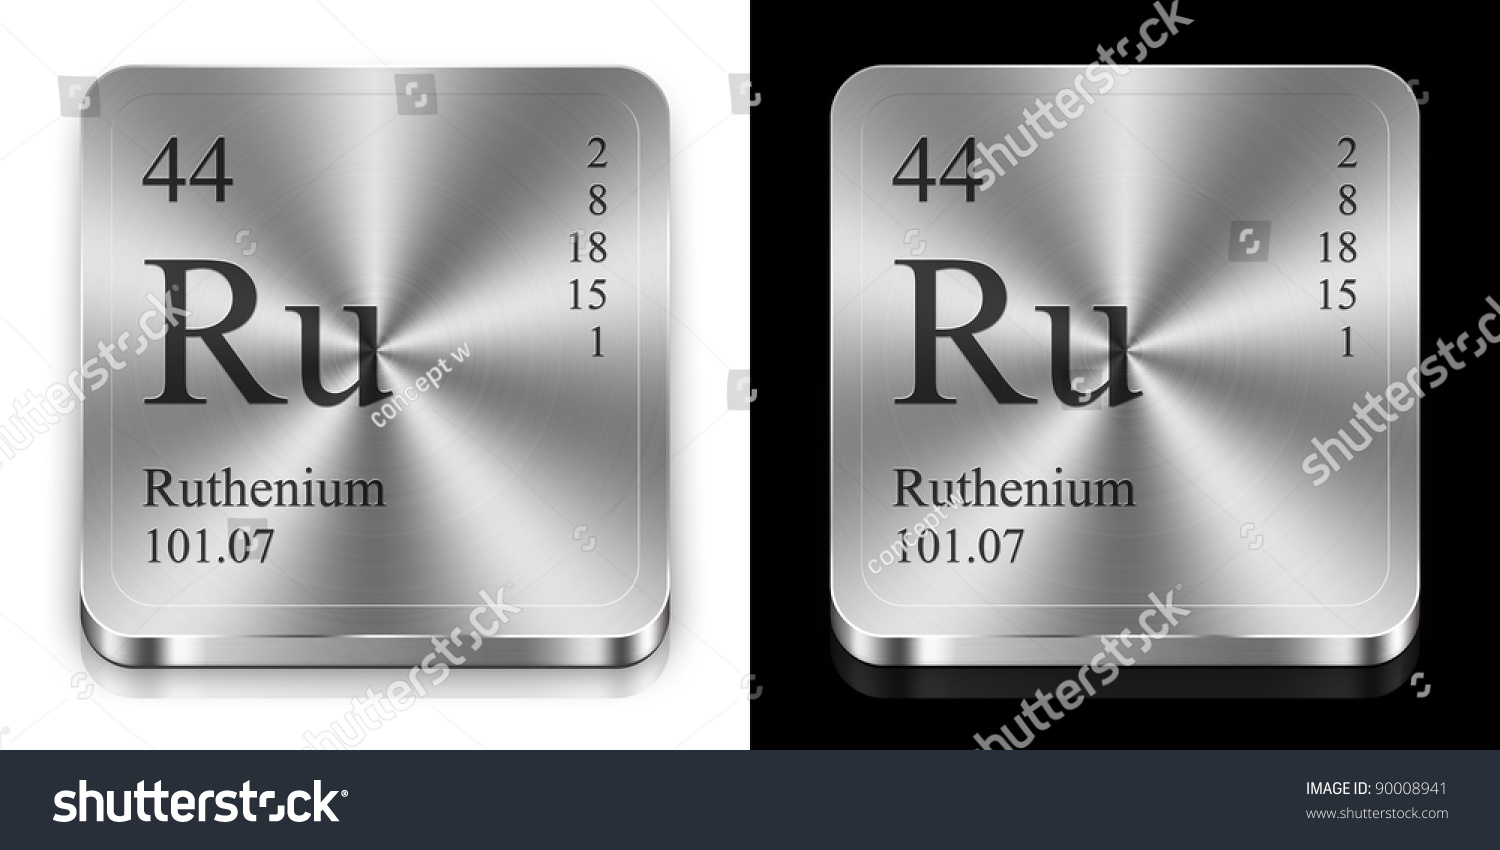 Ruthenium periodic table choice image periodic table images ruthenium element periodic table two metal stock illustration ruthenium element of the periodic table two metal gamestrikefo Choice Image